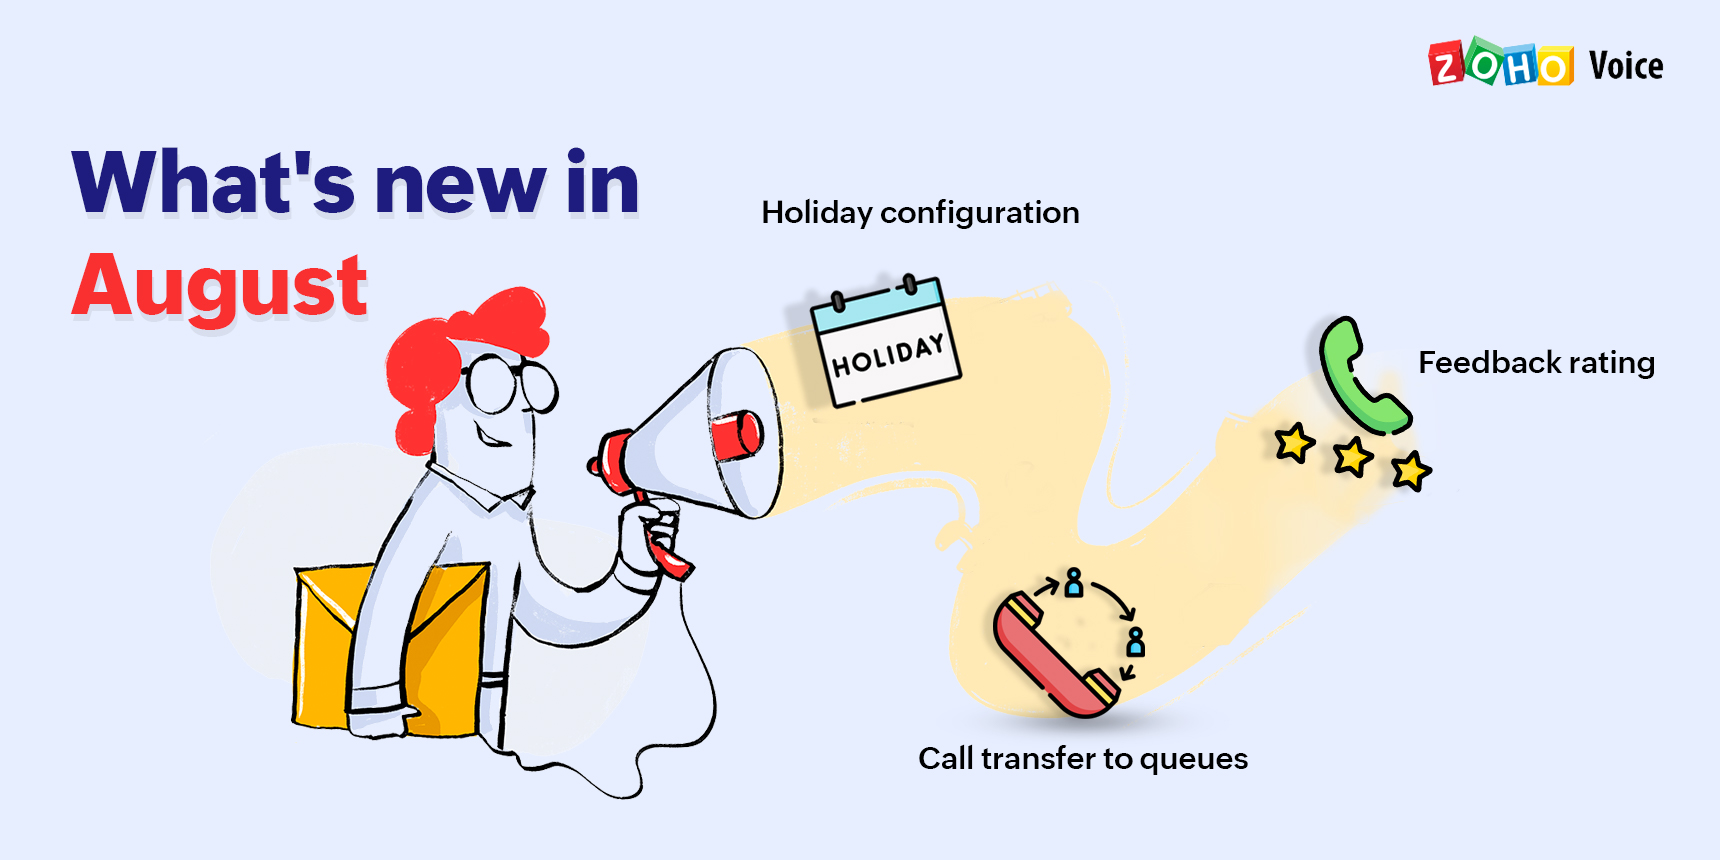 Product updates from Zoho Voice: What's new in August